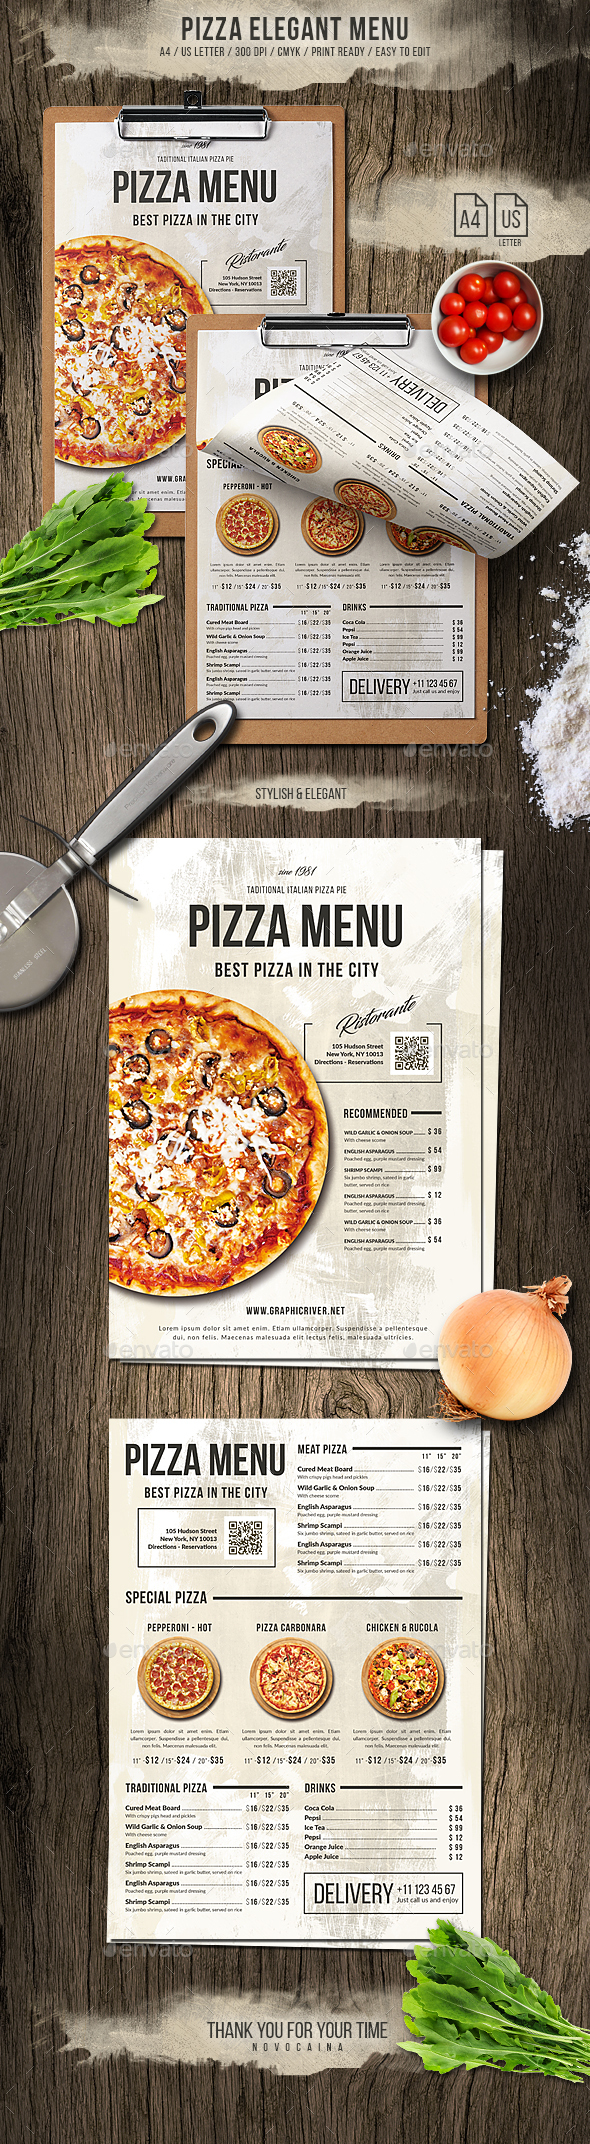 Pizza Elegant Menu - A4 and US Letter - Food Menus Print Templates